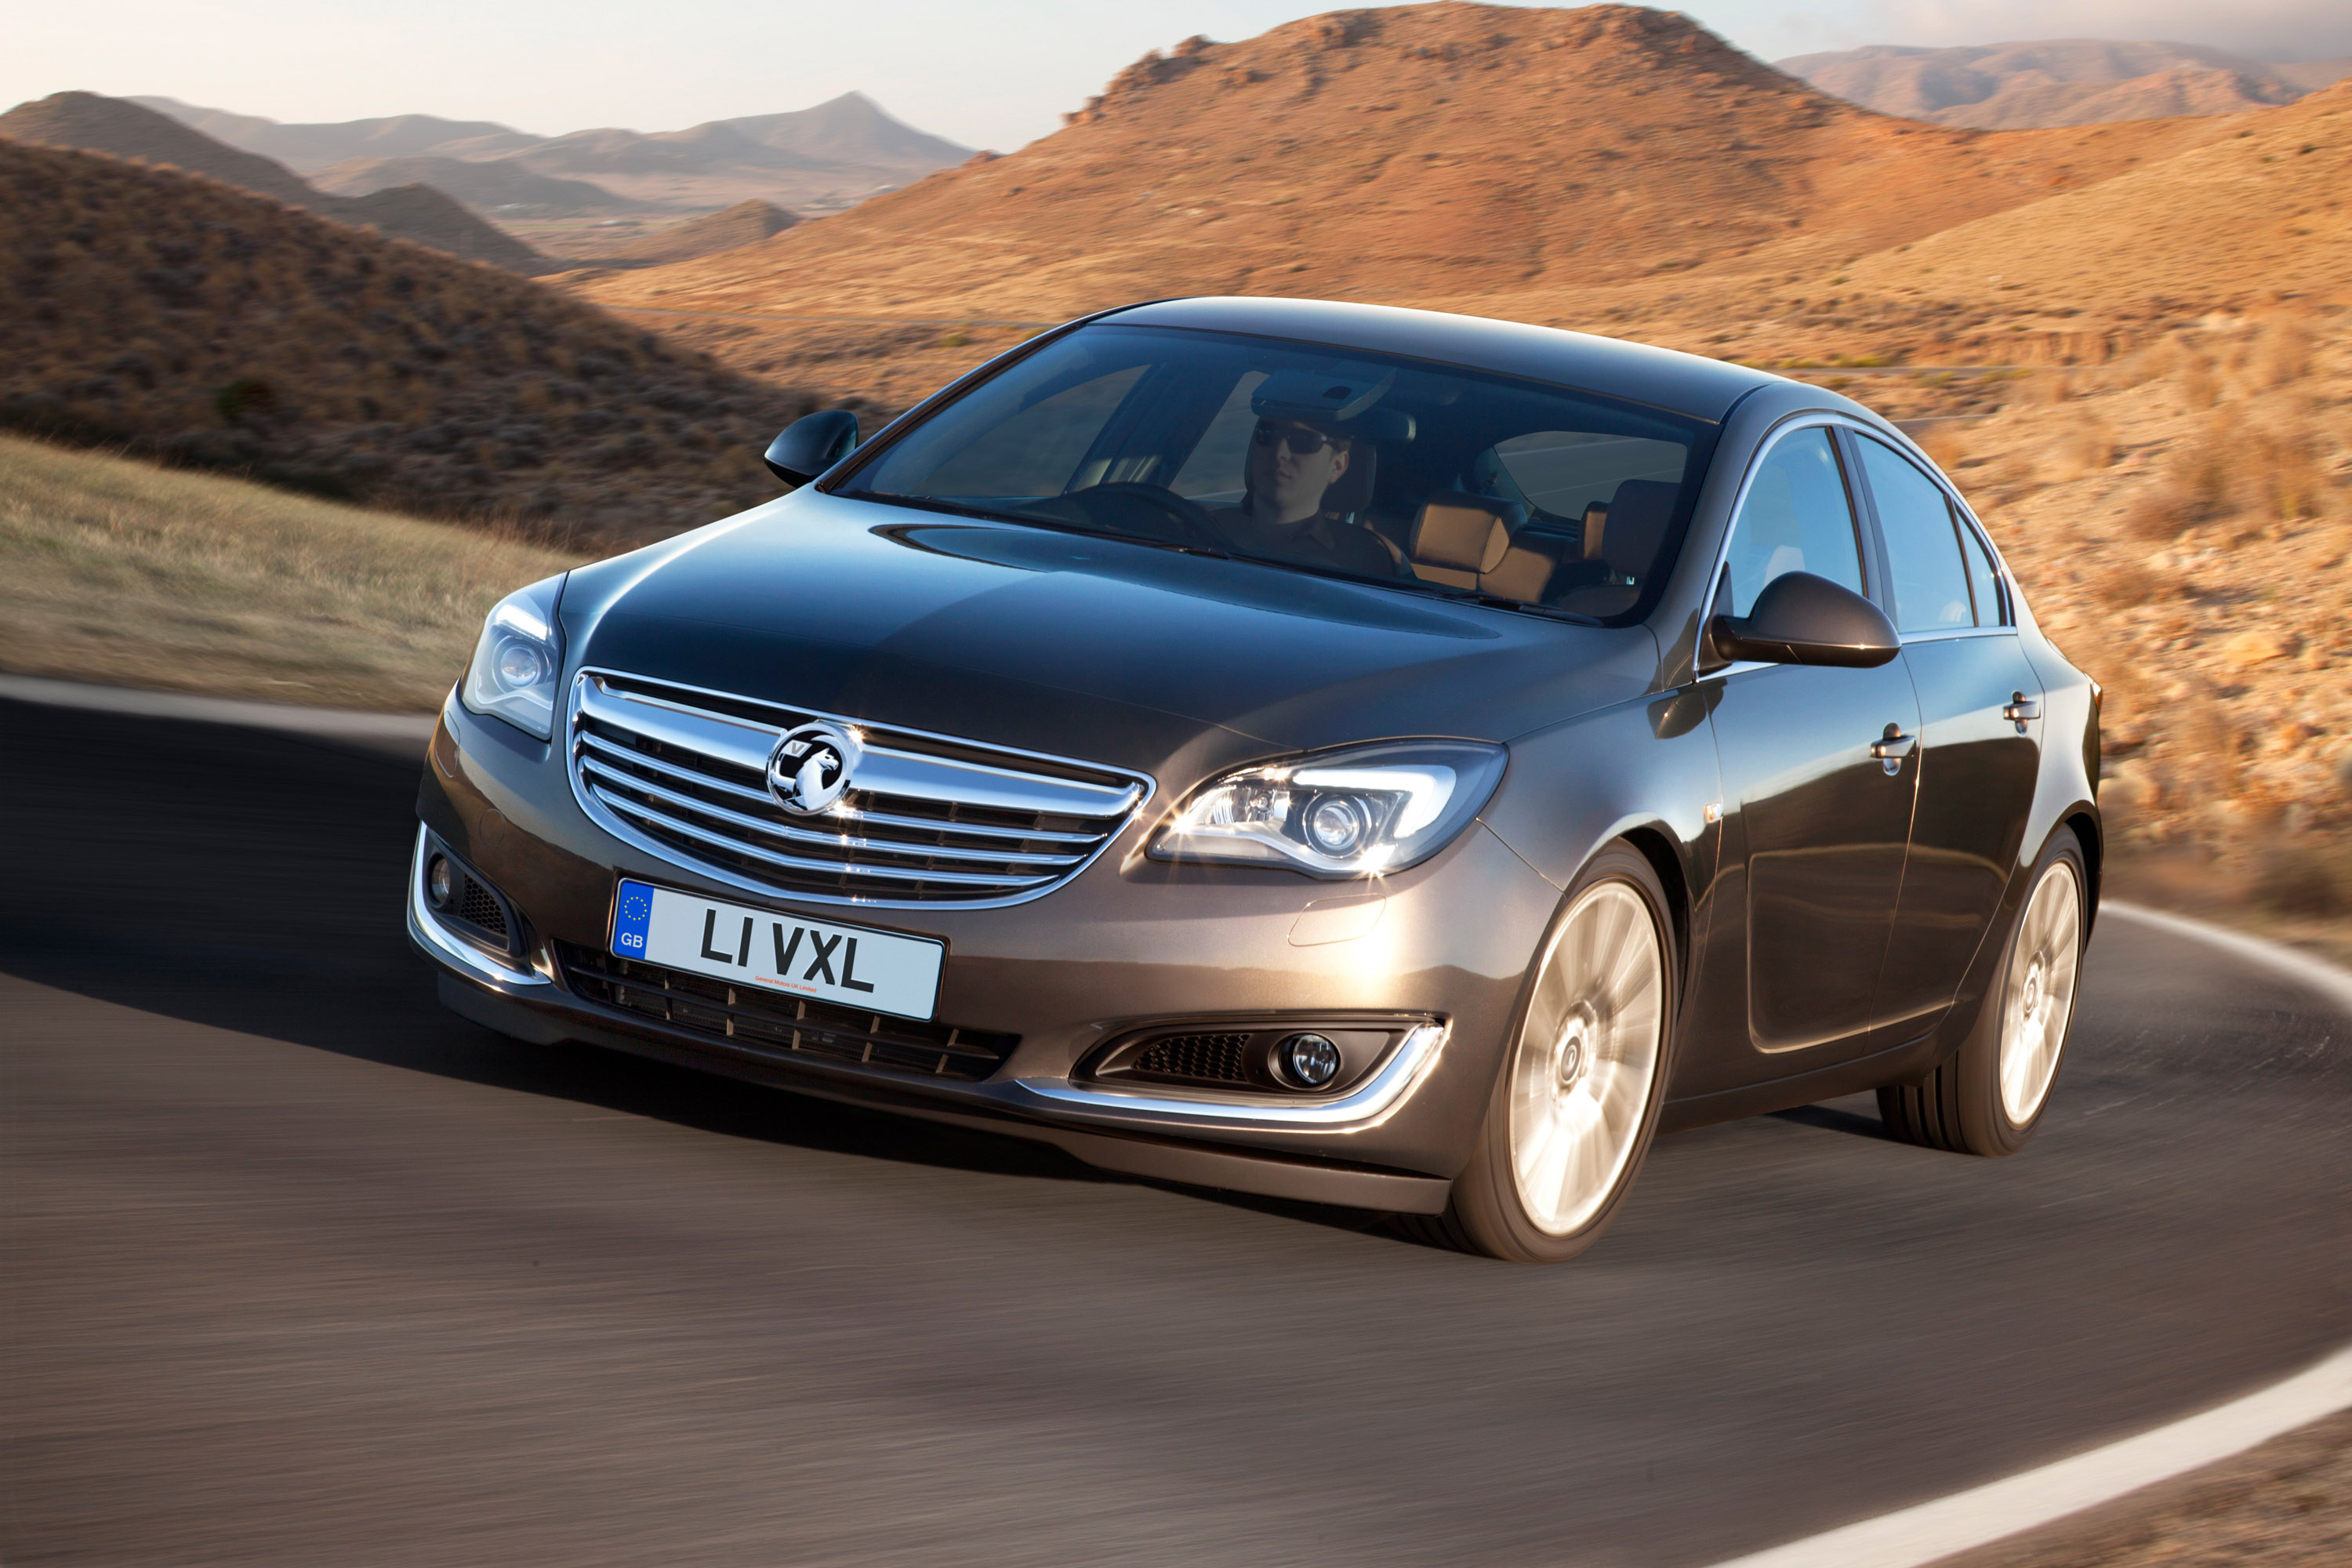 2013 Vauxhall Insignia Uk Price